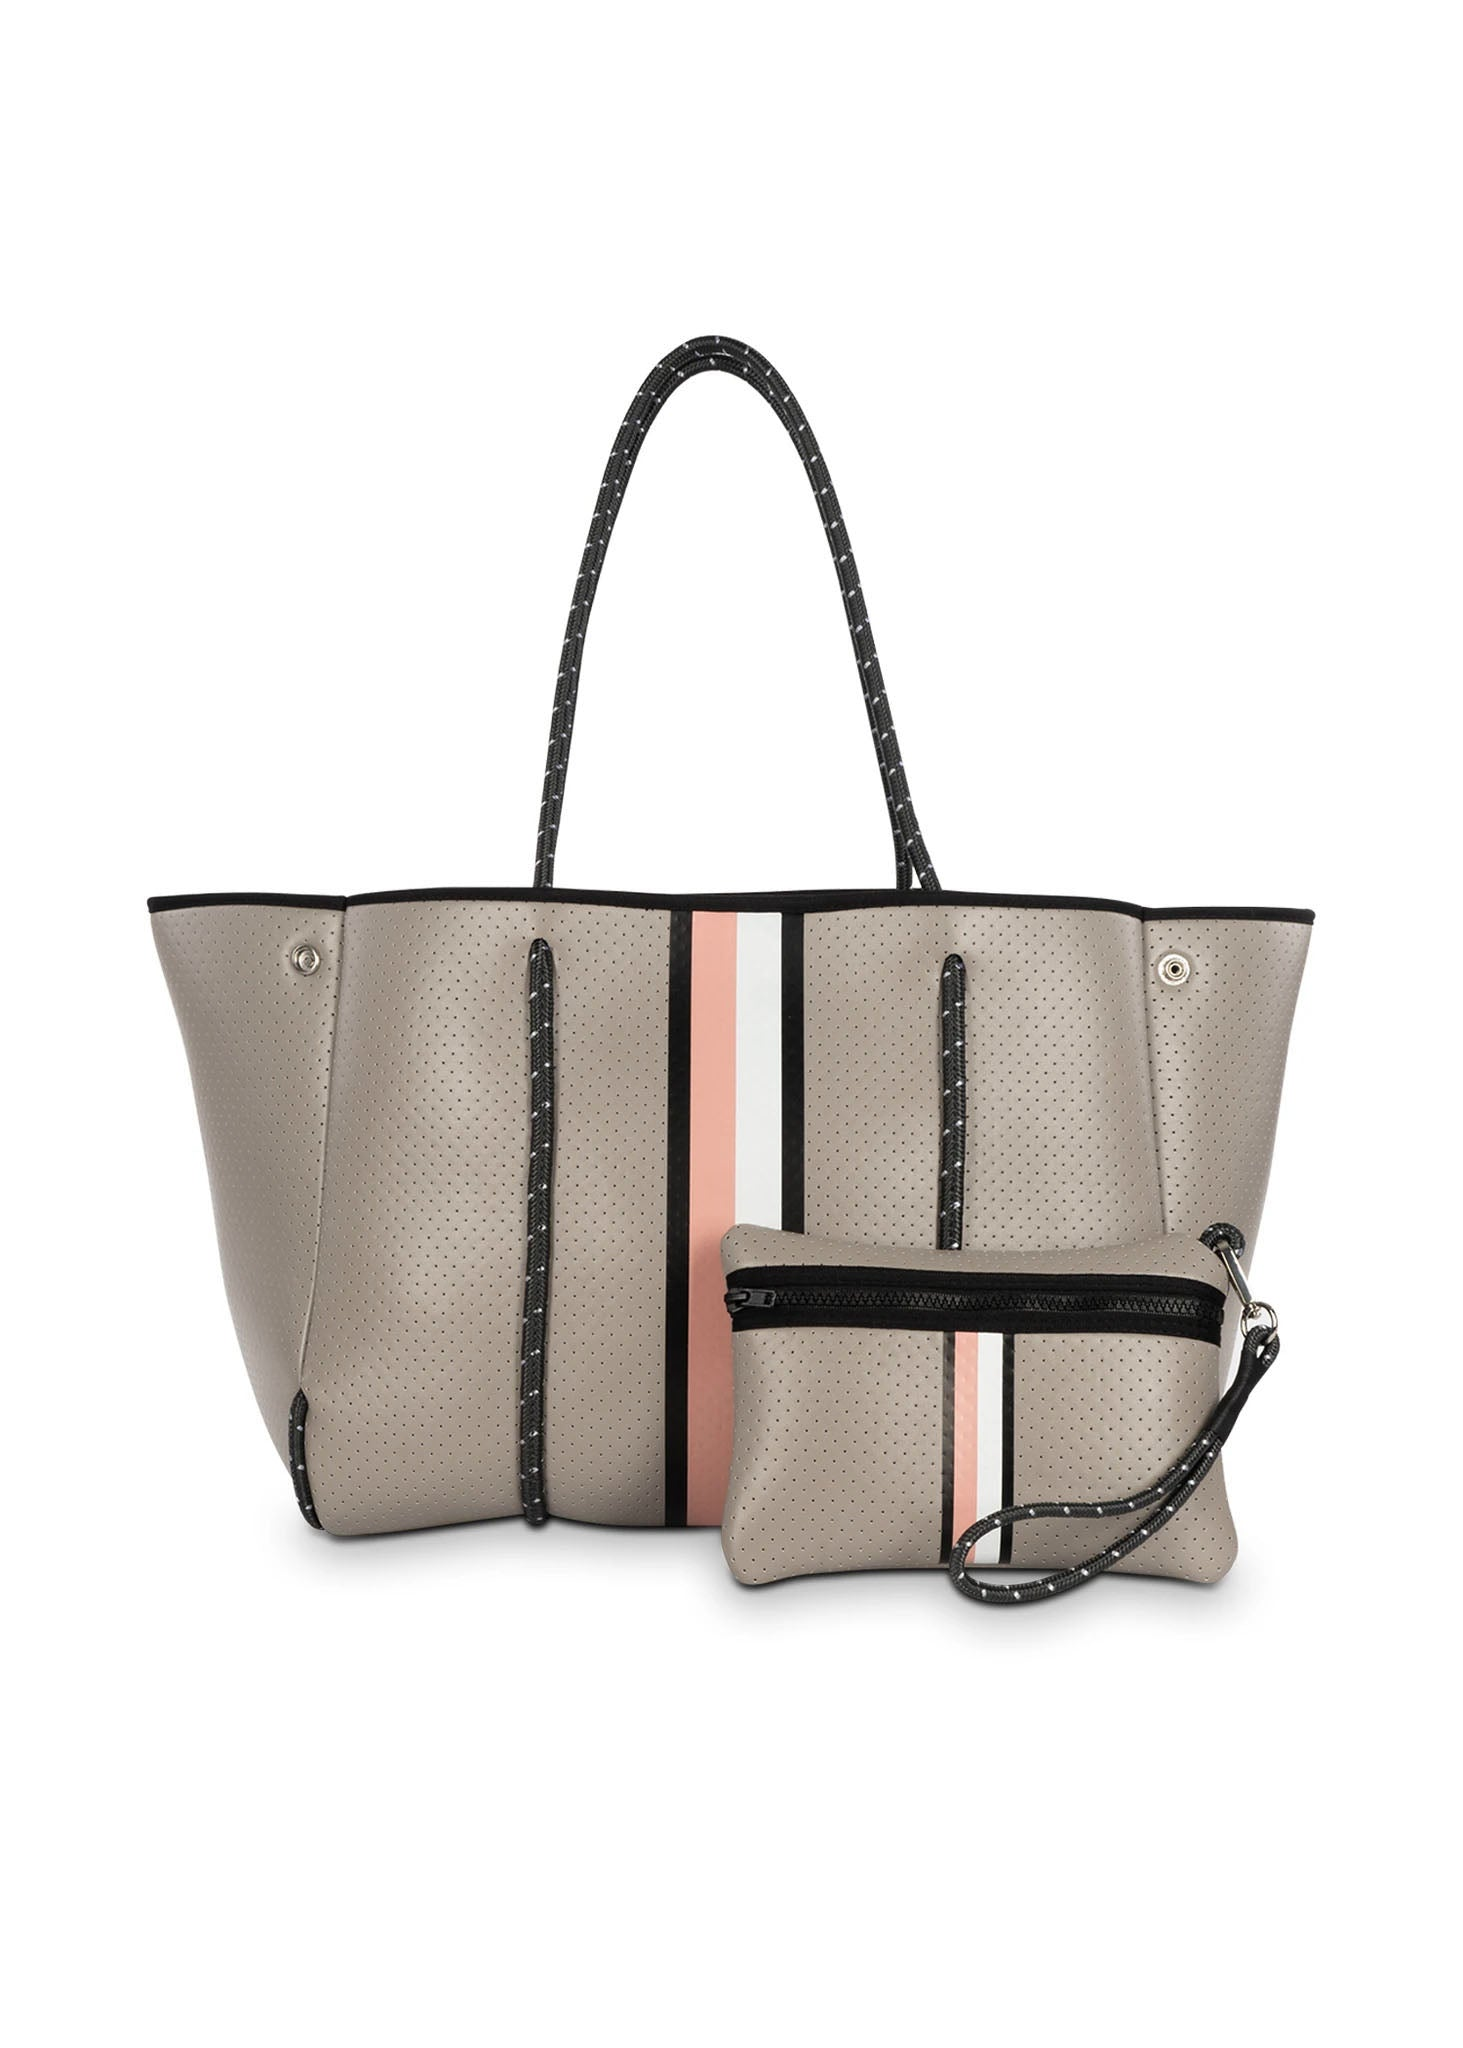 Greyson Posh Neoprene Tote Bag w/Zipper Wristlet Inside (Style Greyson, Taupe w/Black, Blush, & White Strap) by Haute Shore